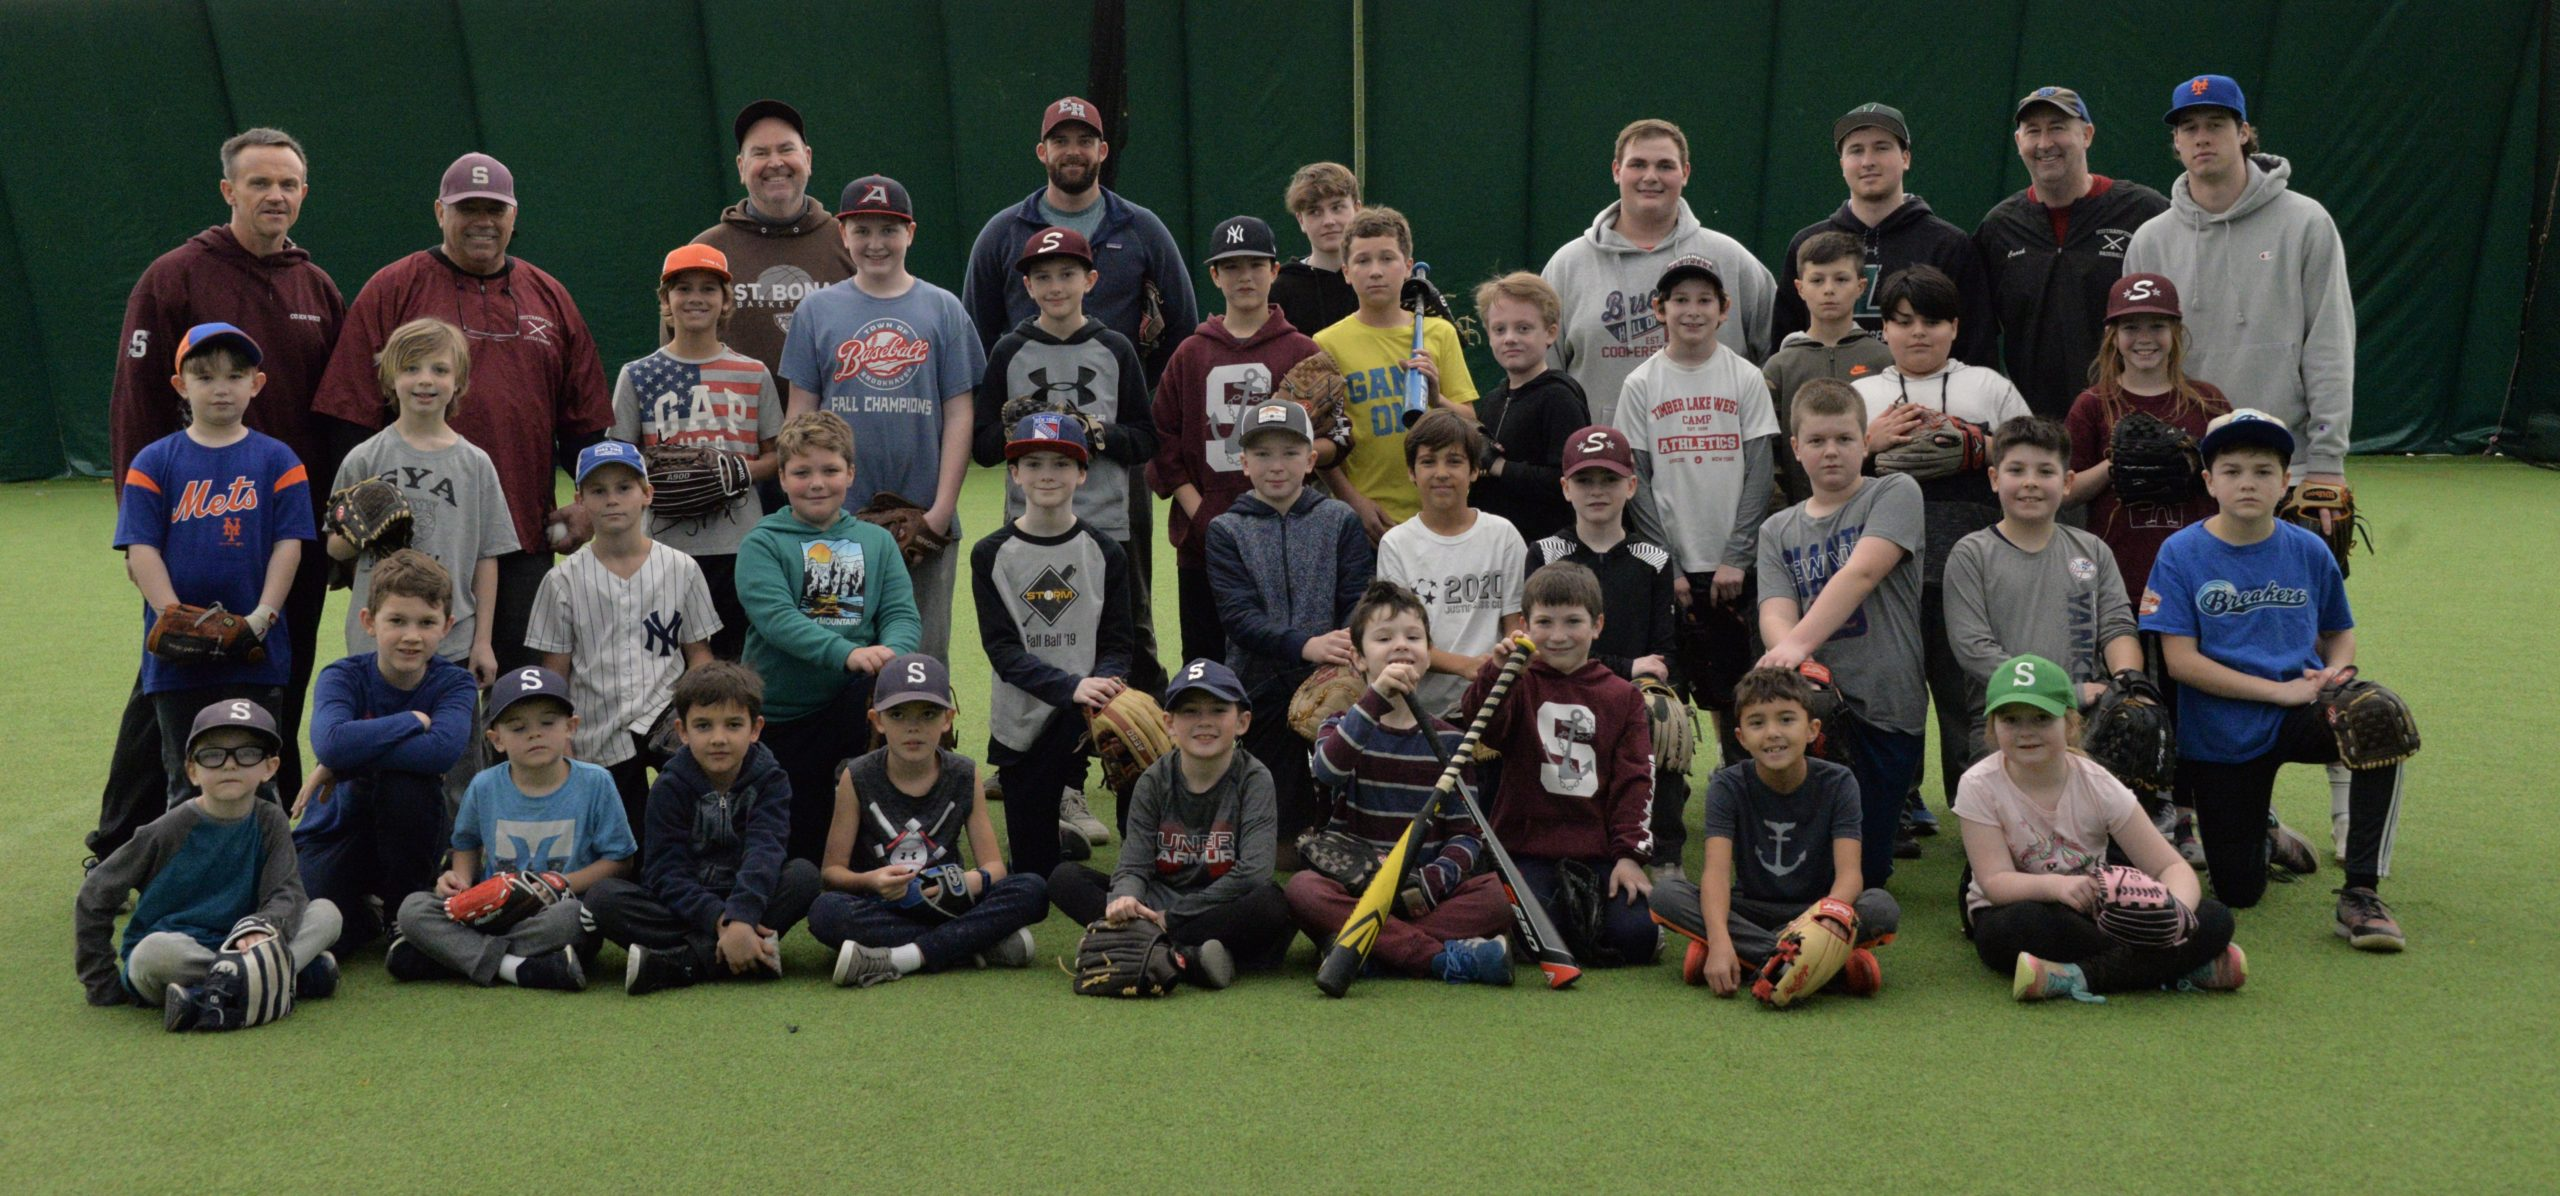 Boys and girls are getting ready for a new season of Southampton Little League by participating in winter clinics. MICHELLE MALONE